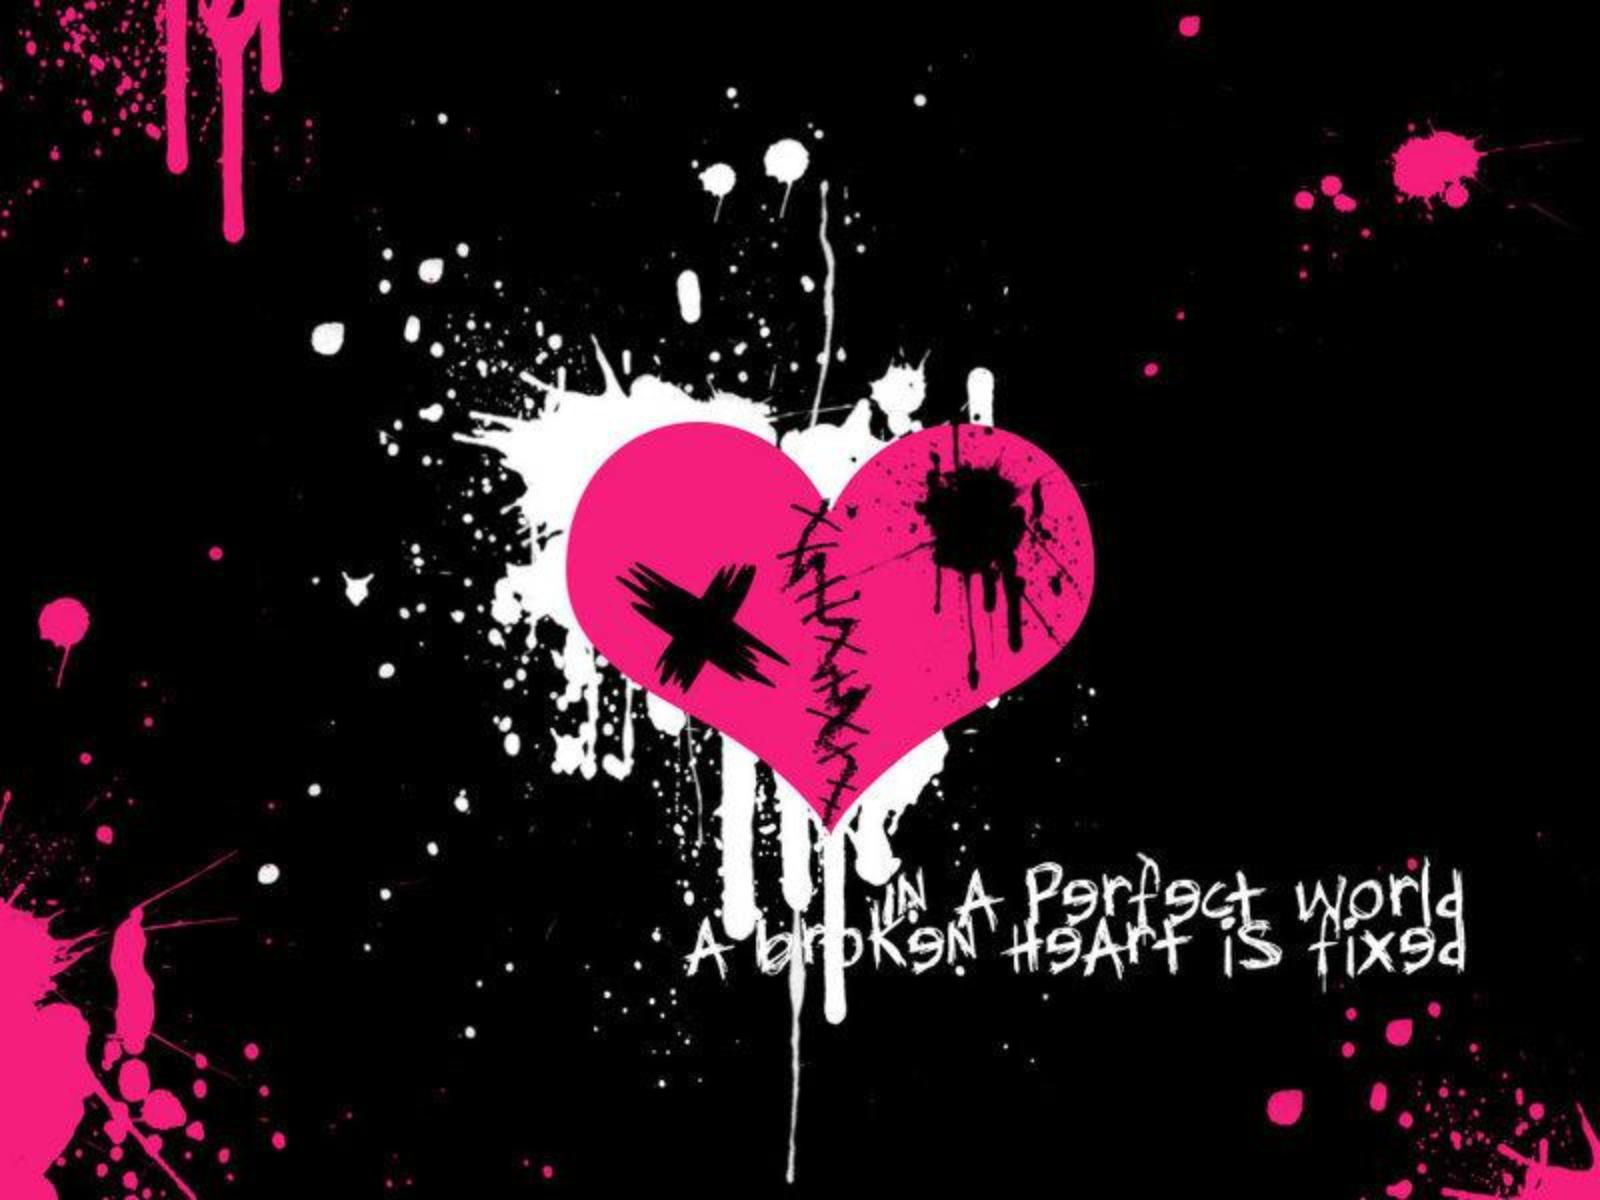 Love Emo Wallpaper Hd : heart wallpapers emo - HD Desktop Wallpapers 4k HD